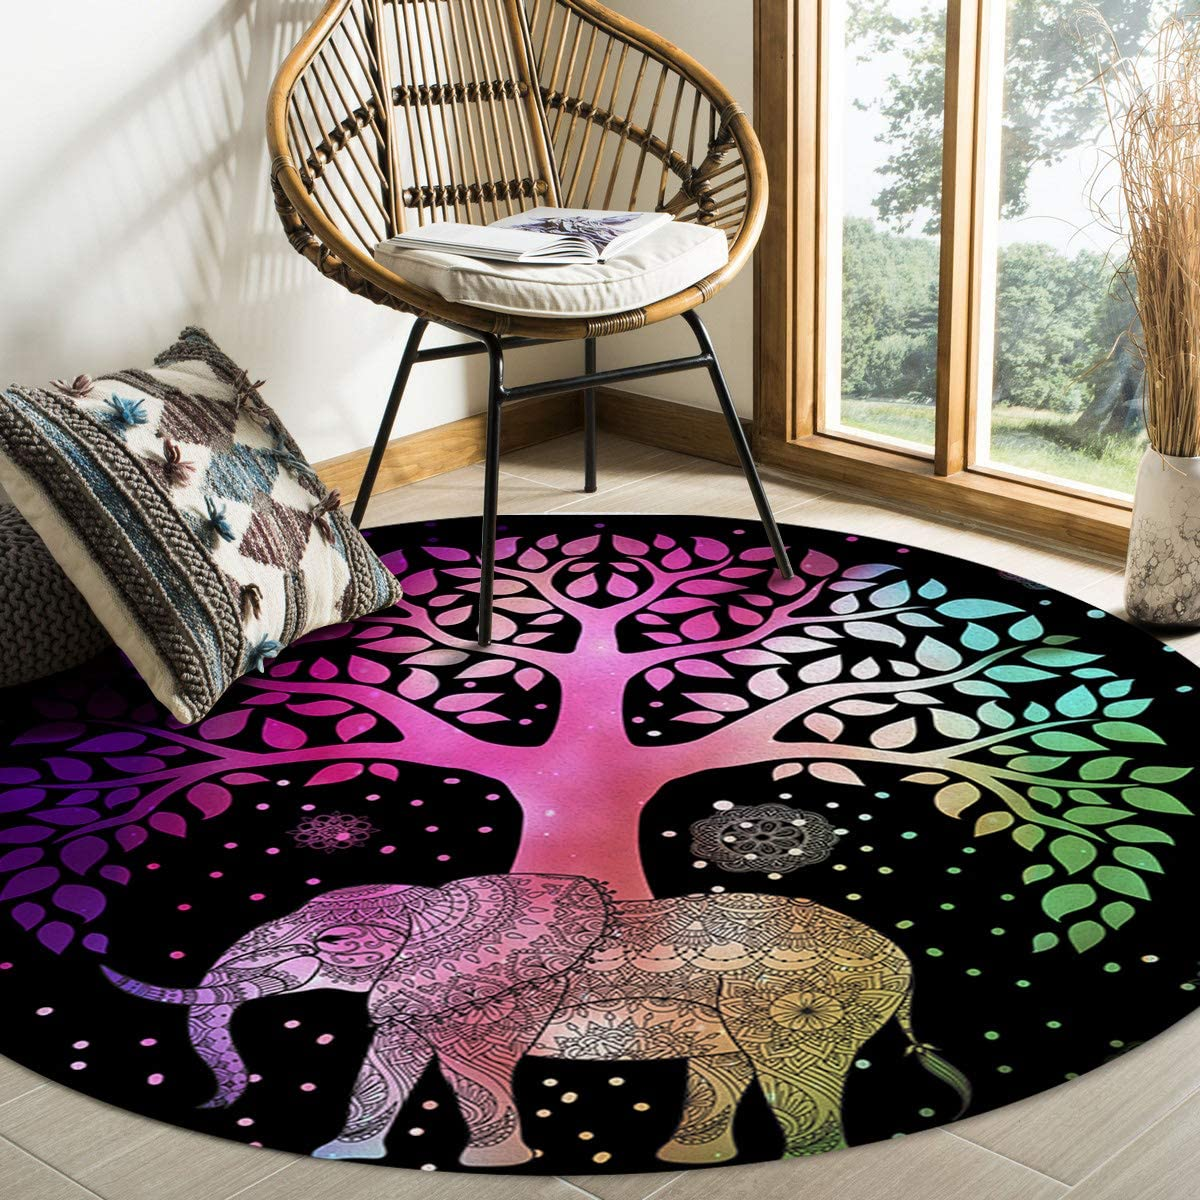 FAMILYDECOR Modern Floor Mats Do Not 6ft In stock Area Fall Rug Off Round Attention brand